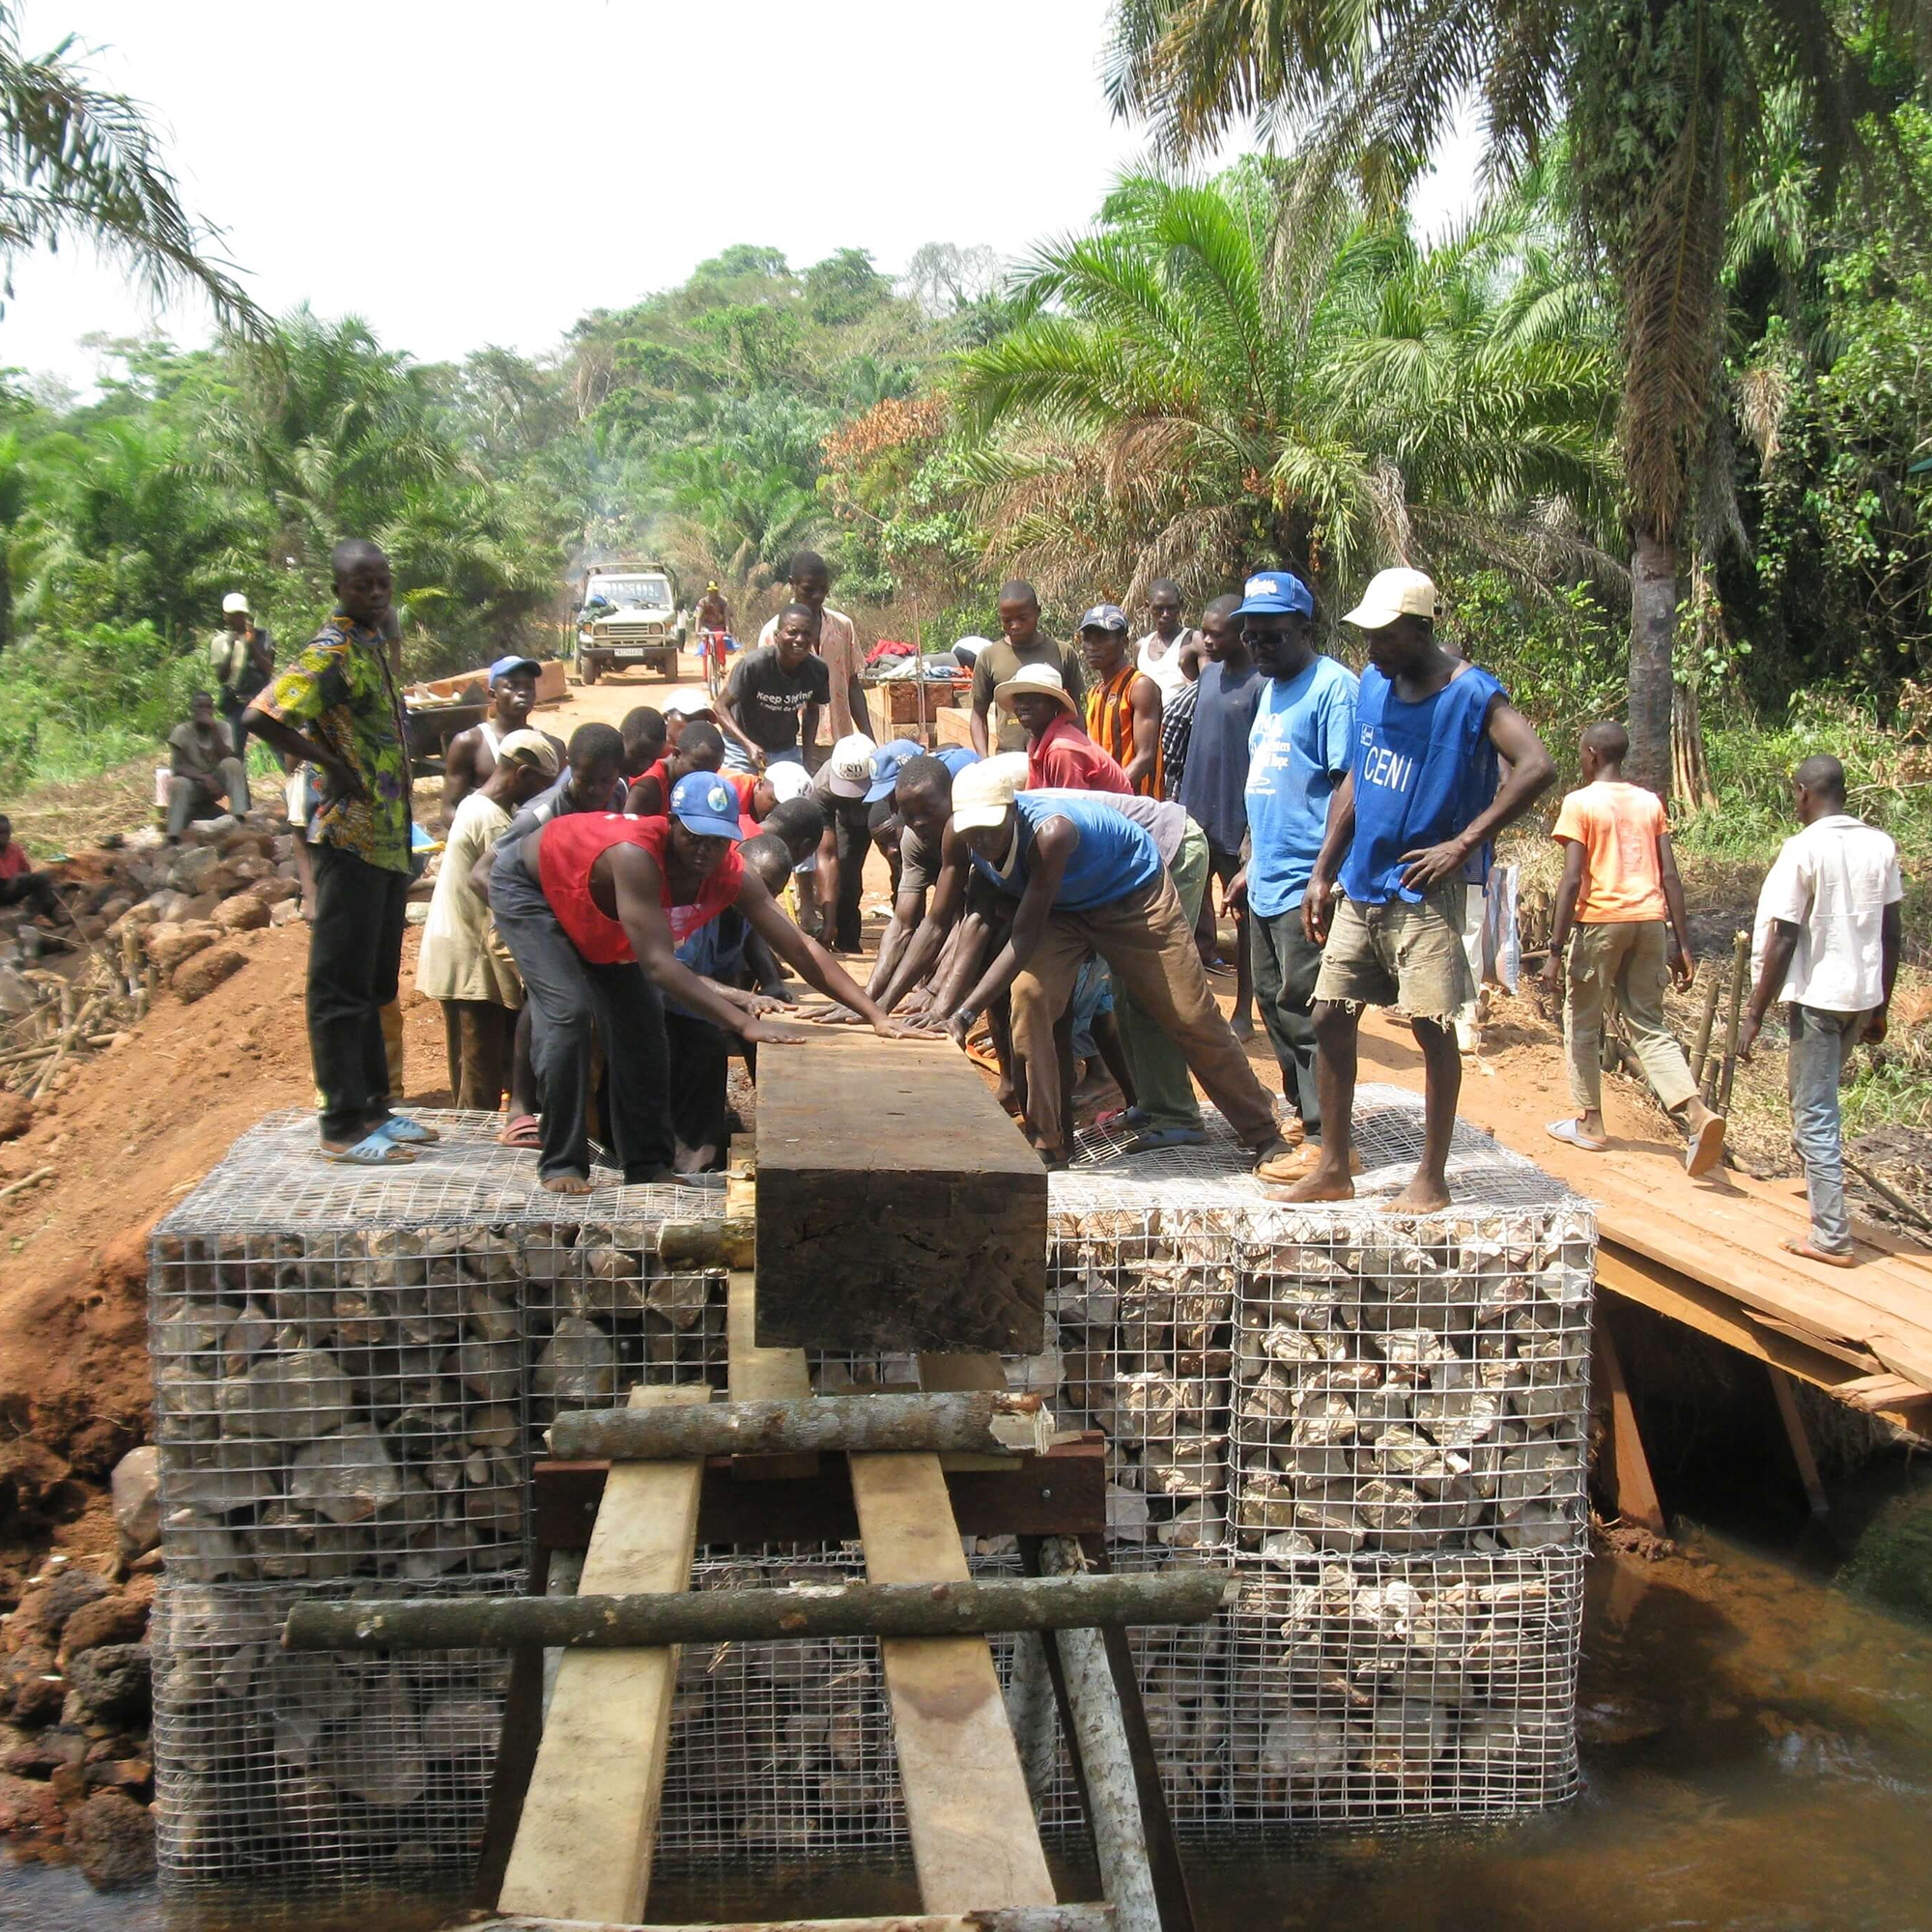 Local laborers building the first bridge in this project, called Llumba bridge. The bridges are designed to be built by hand using mostly local materials.